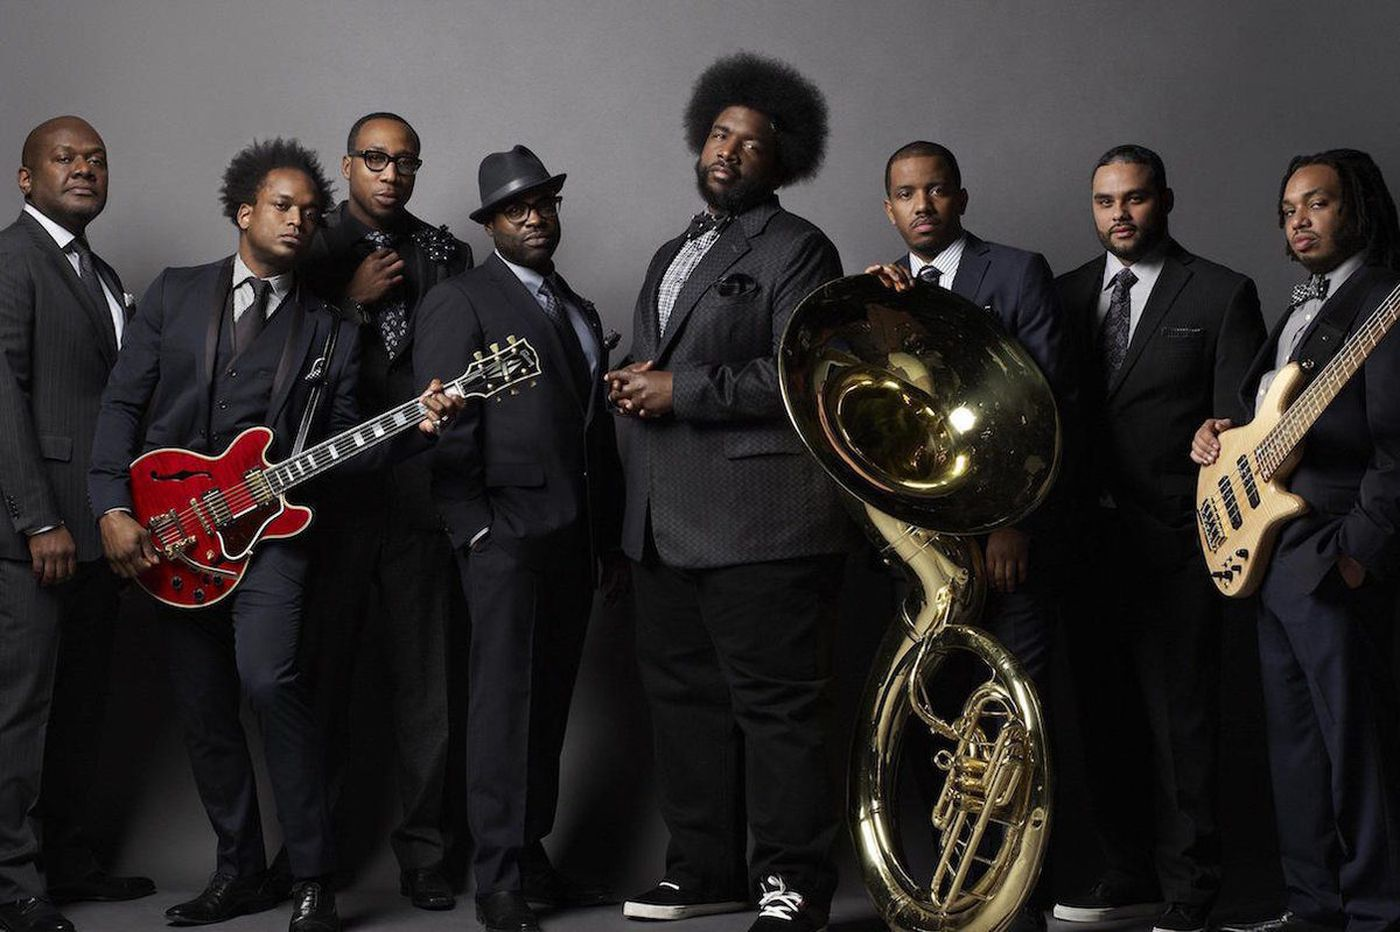 The Roots' SXSW event canceled after bomb threat; suspect in custody